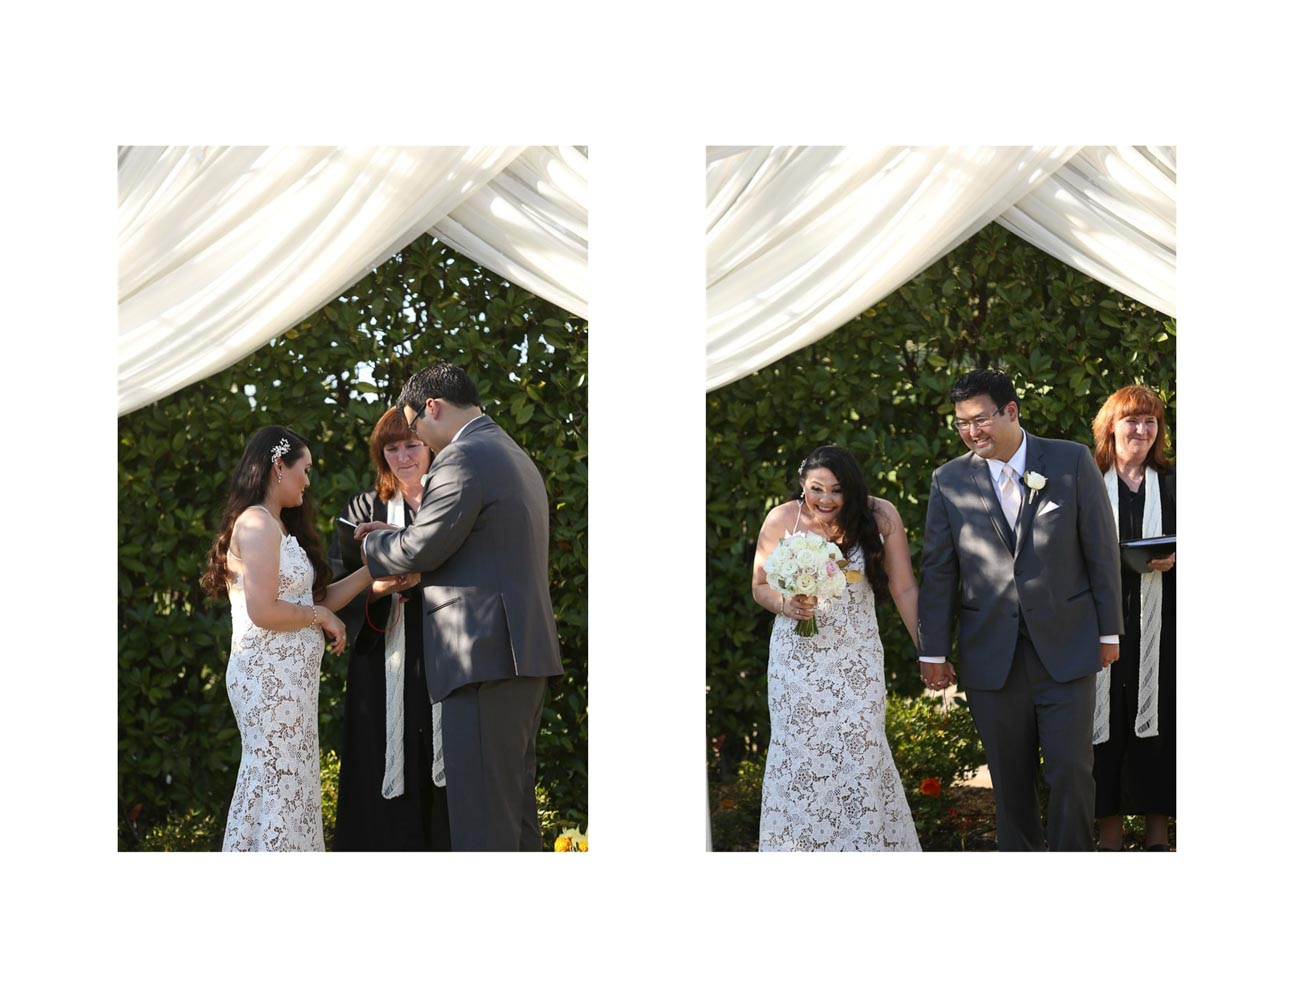 Two-photo collage of bride and groom tying red string of fate on each other's wrist, and then smiing at end of wedding ceremony